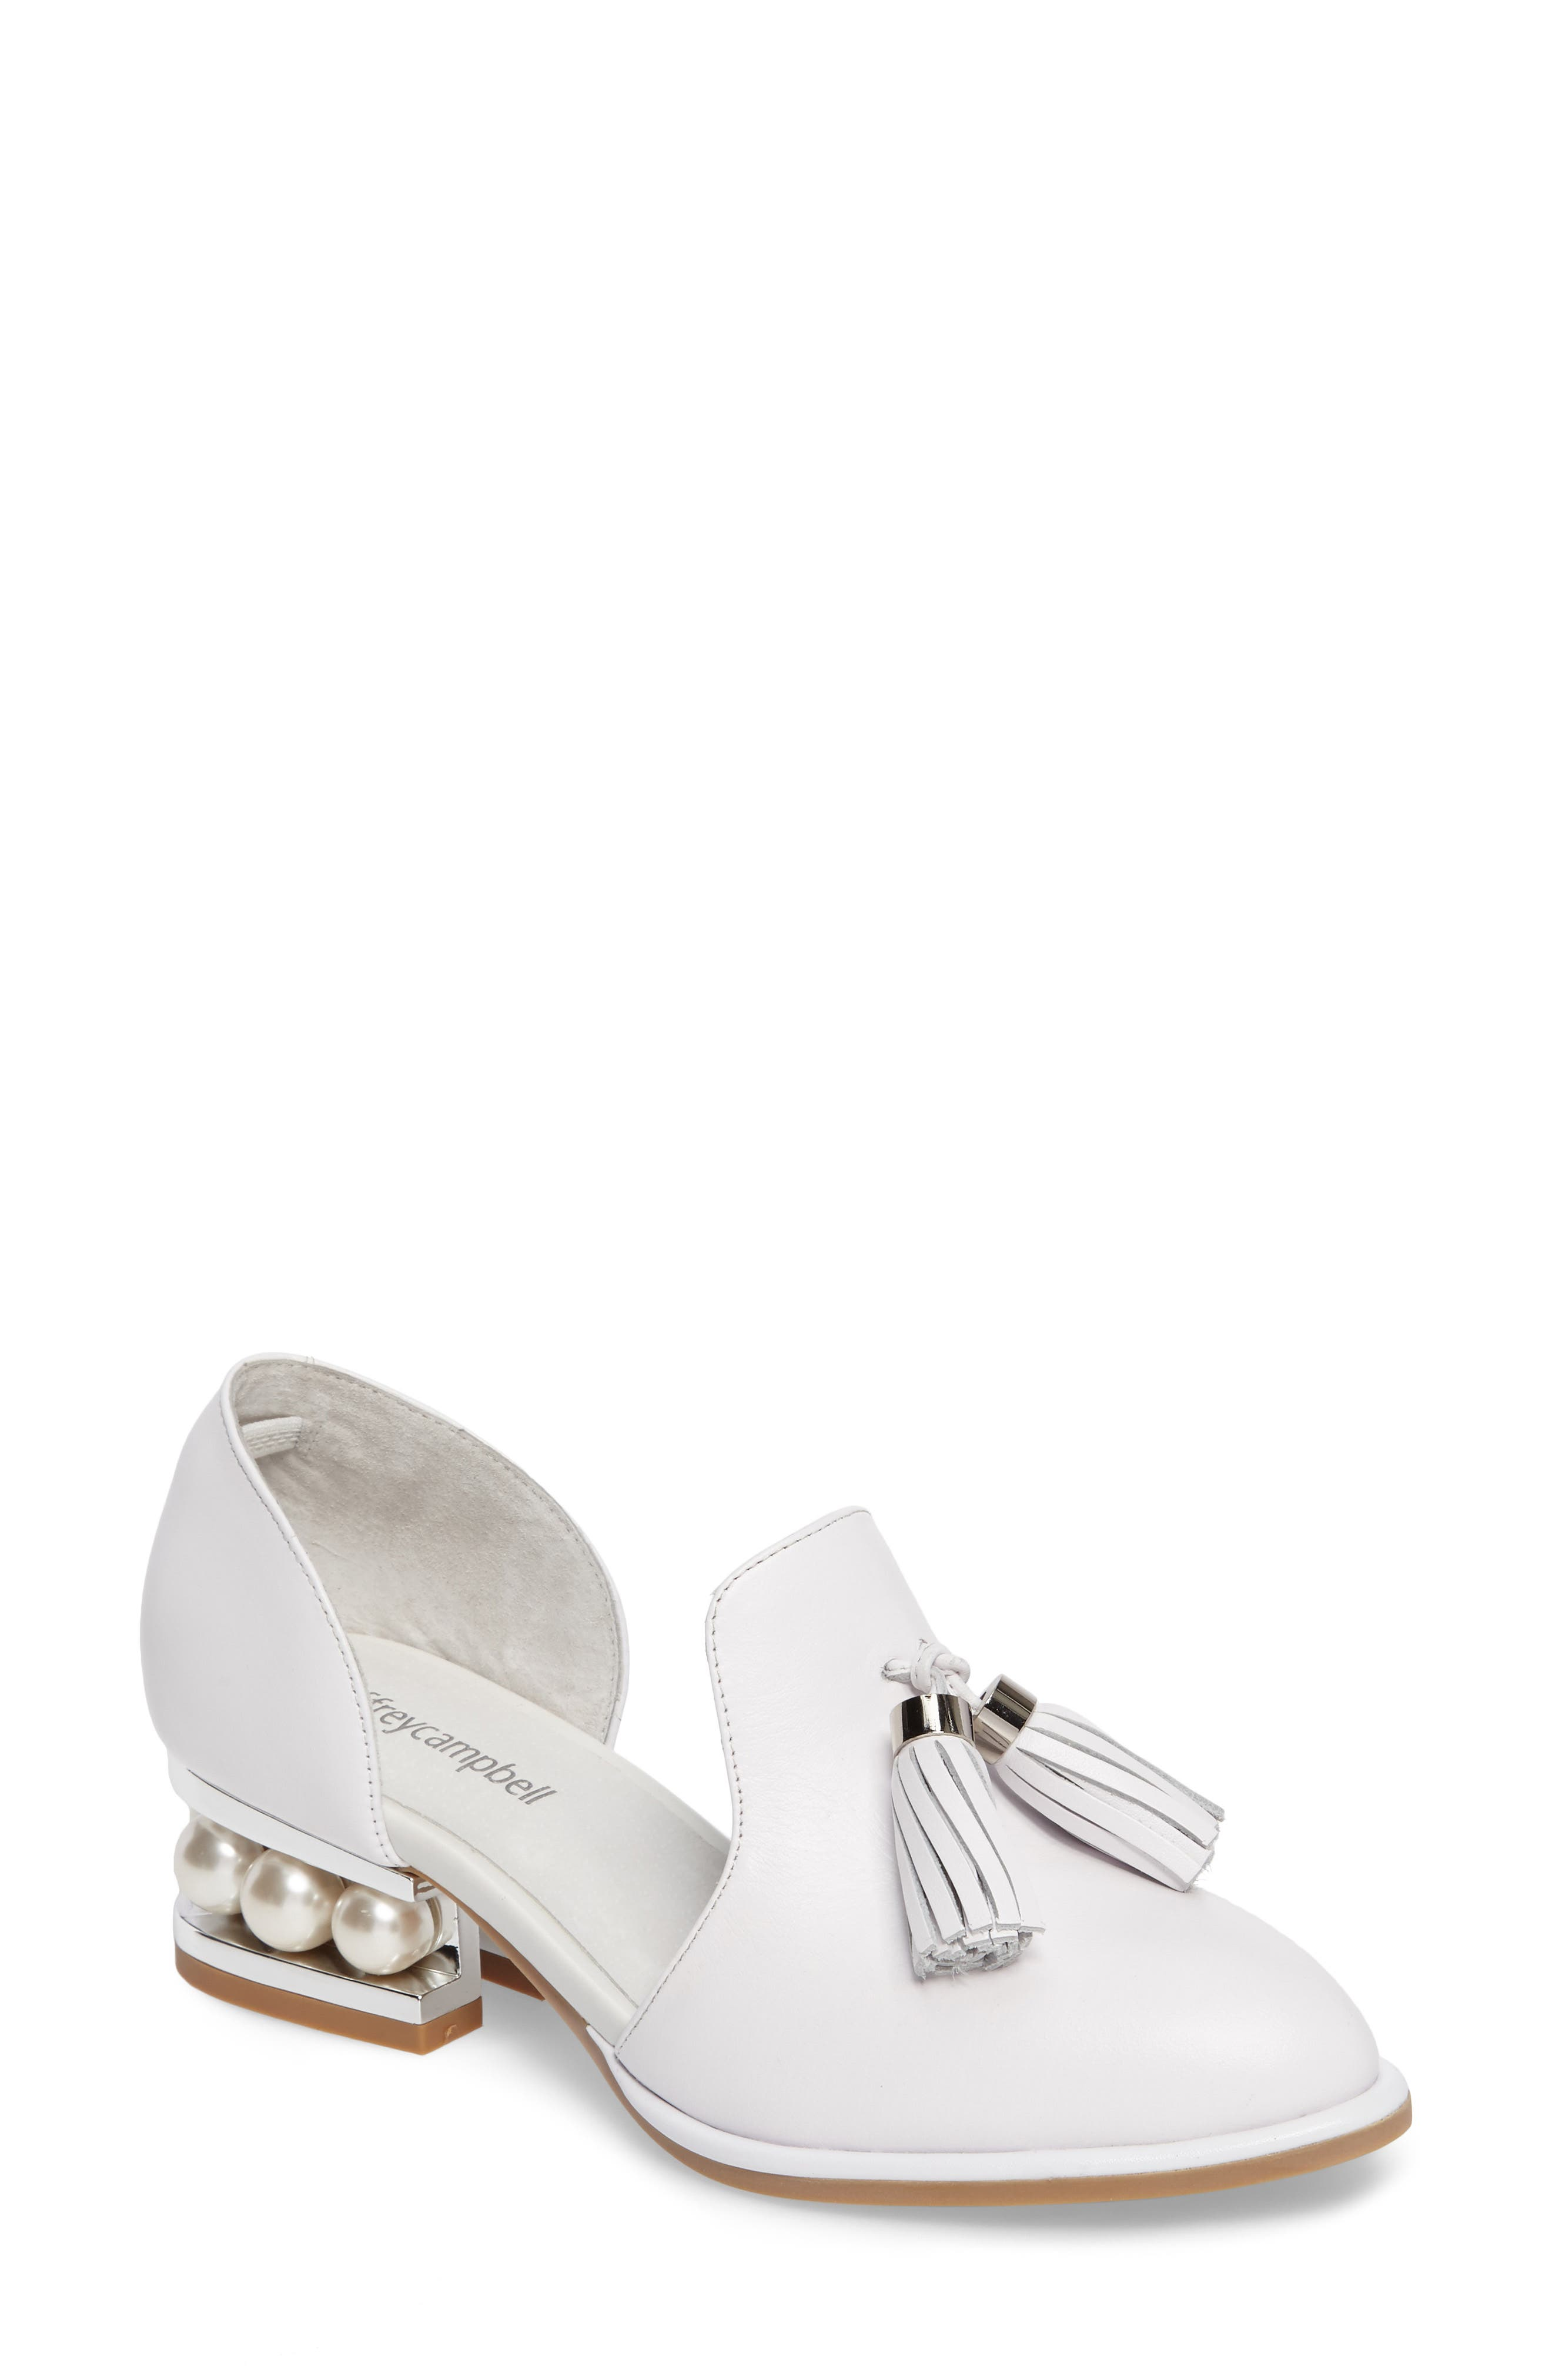 JEFFREY CAMPBELL 'Civil' Pearly Heeled Beaded Tassel Loafer